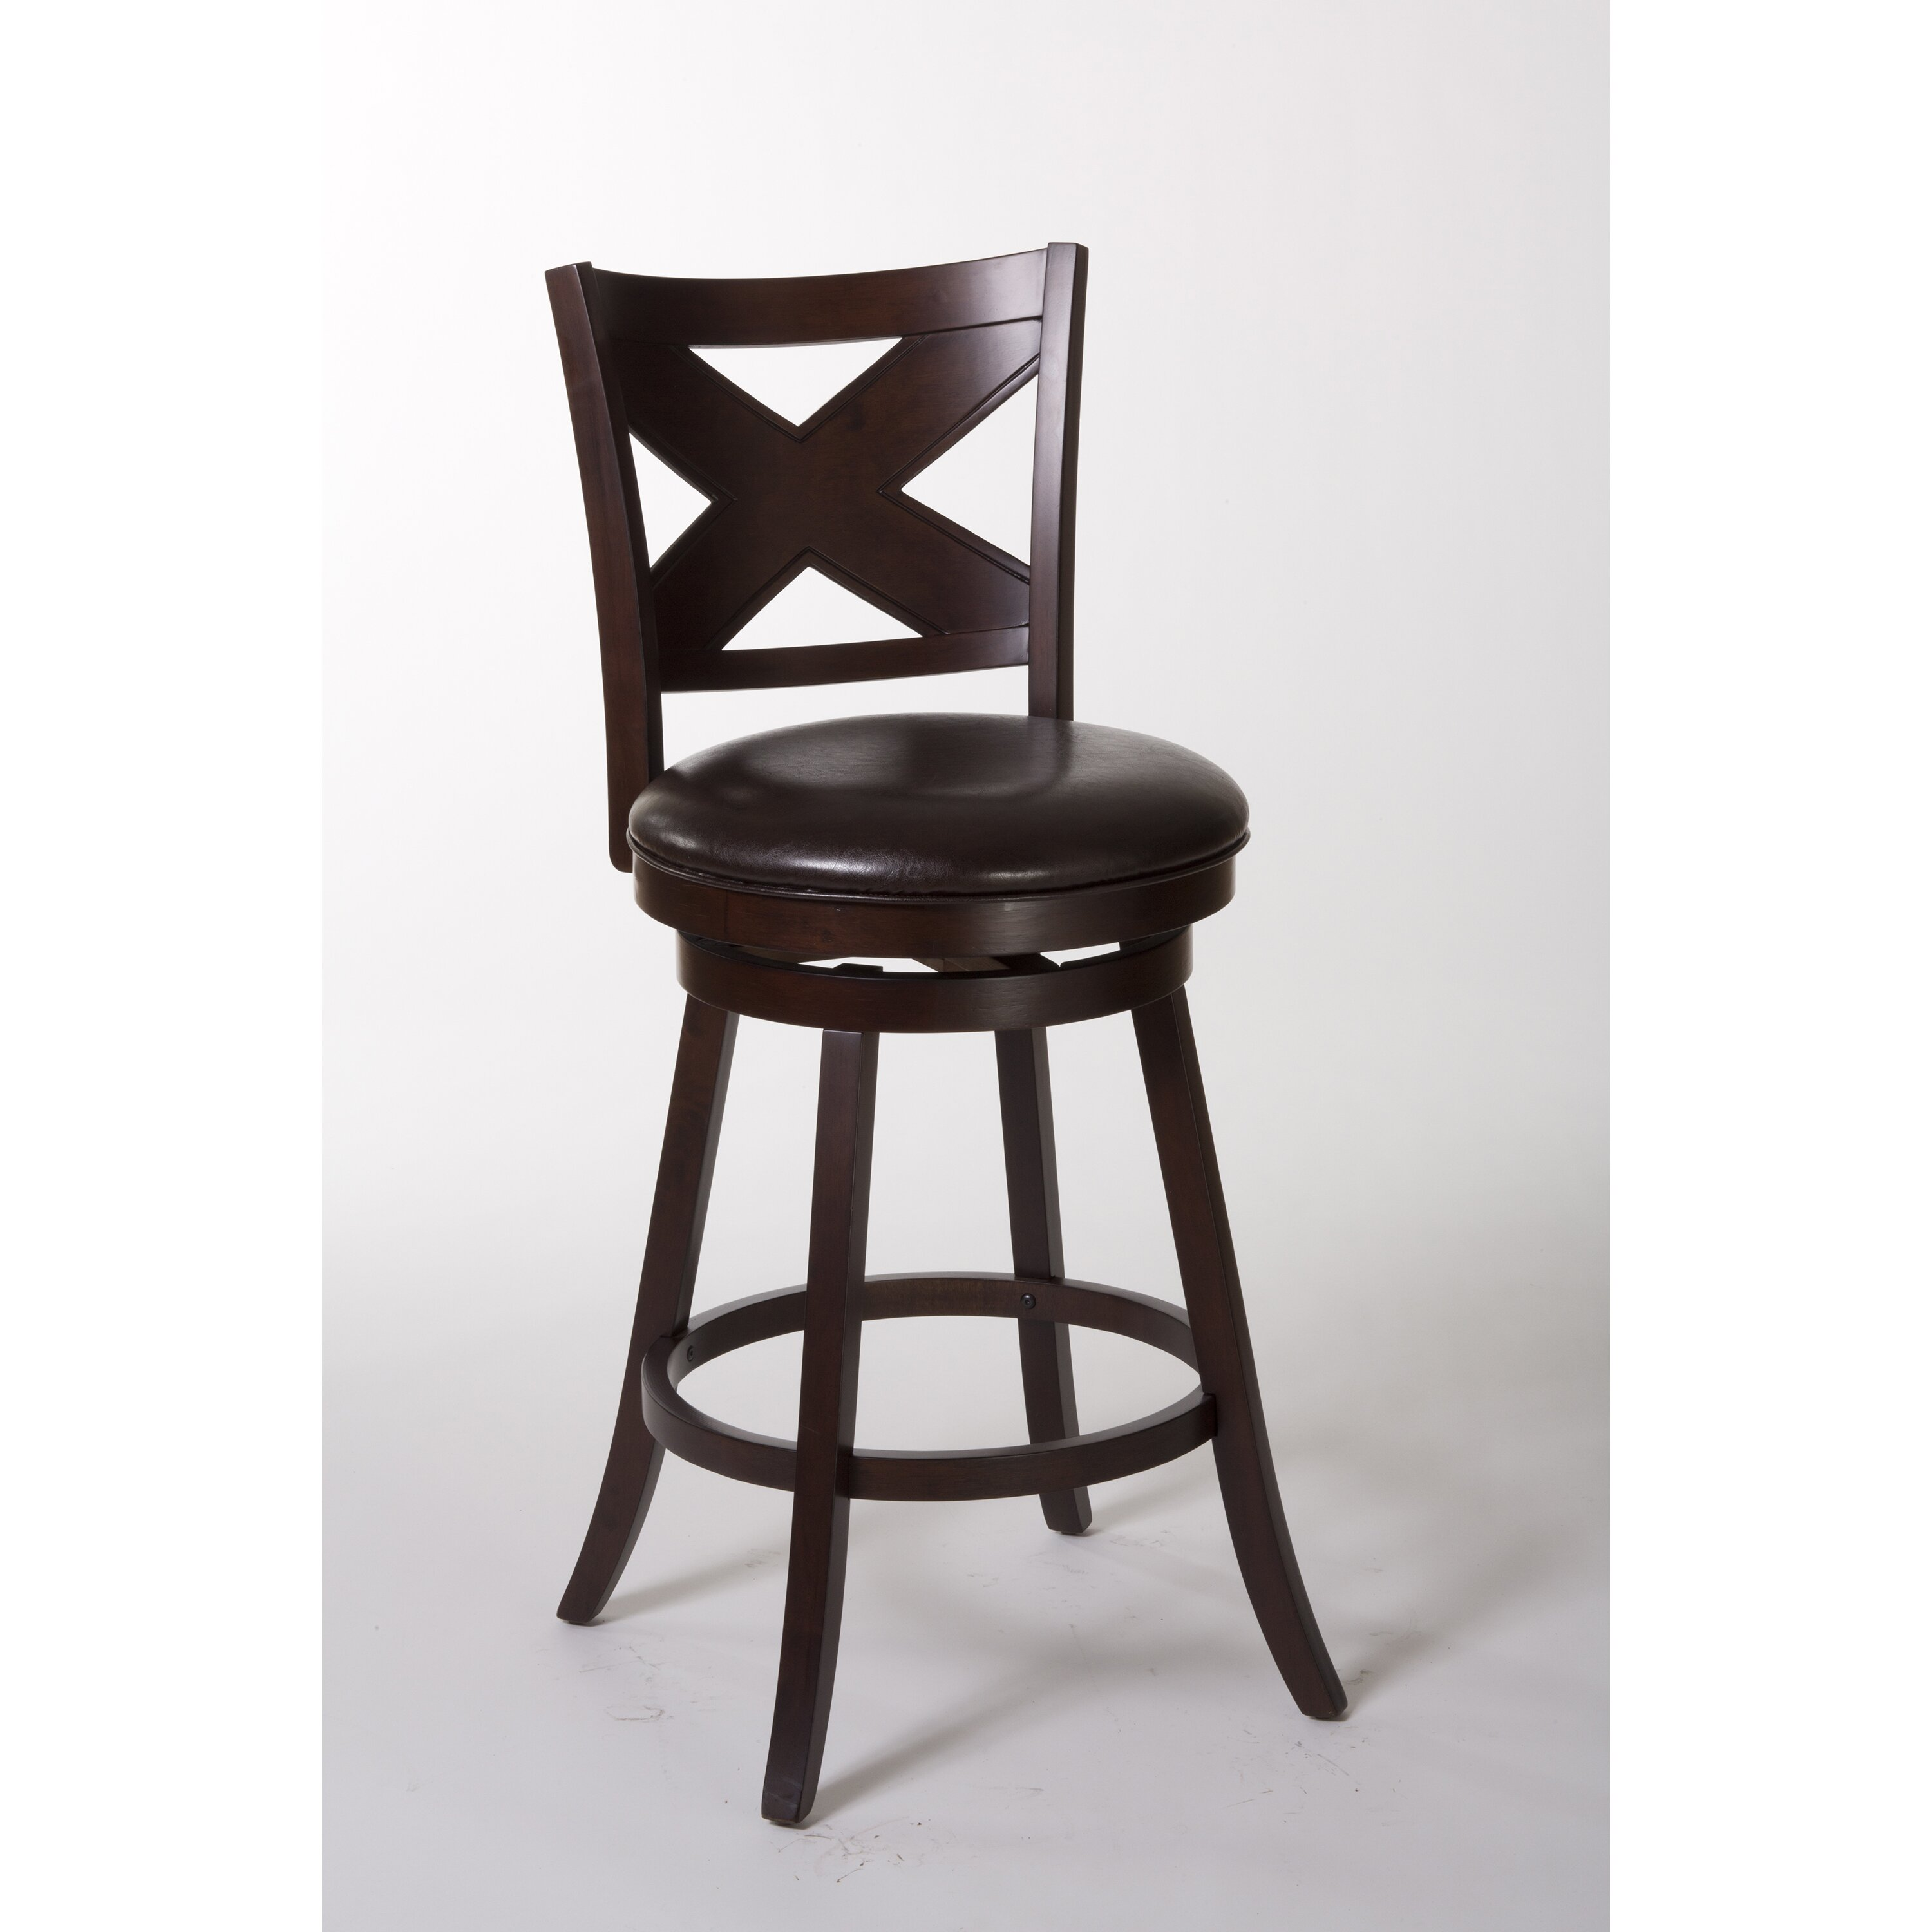 Hillsdale Ashbrook 2575quot Swivel Bar Stool With Cushion  : Houghton2BCounter2BStool from www.wayfair.com size 3000 x 3000 jpeg 555kB